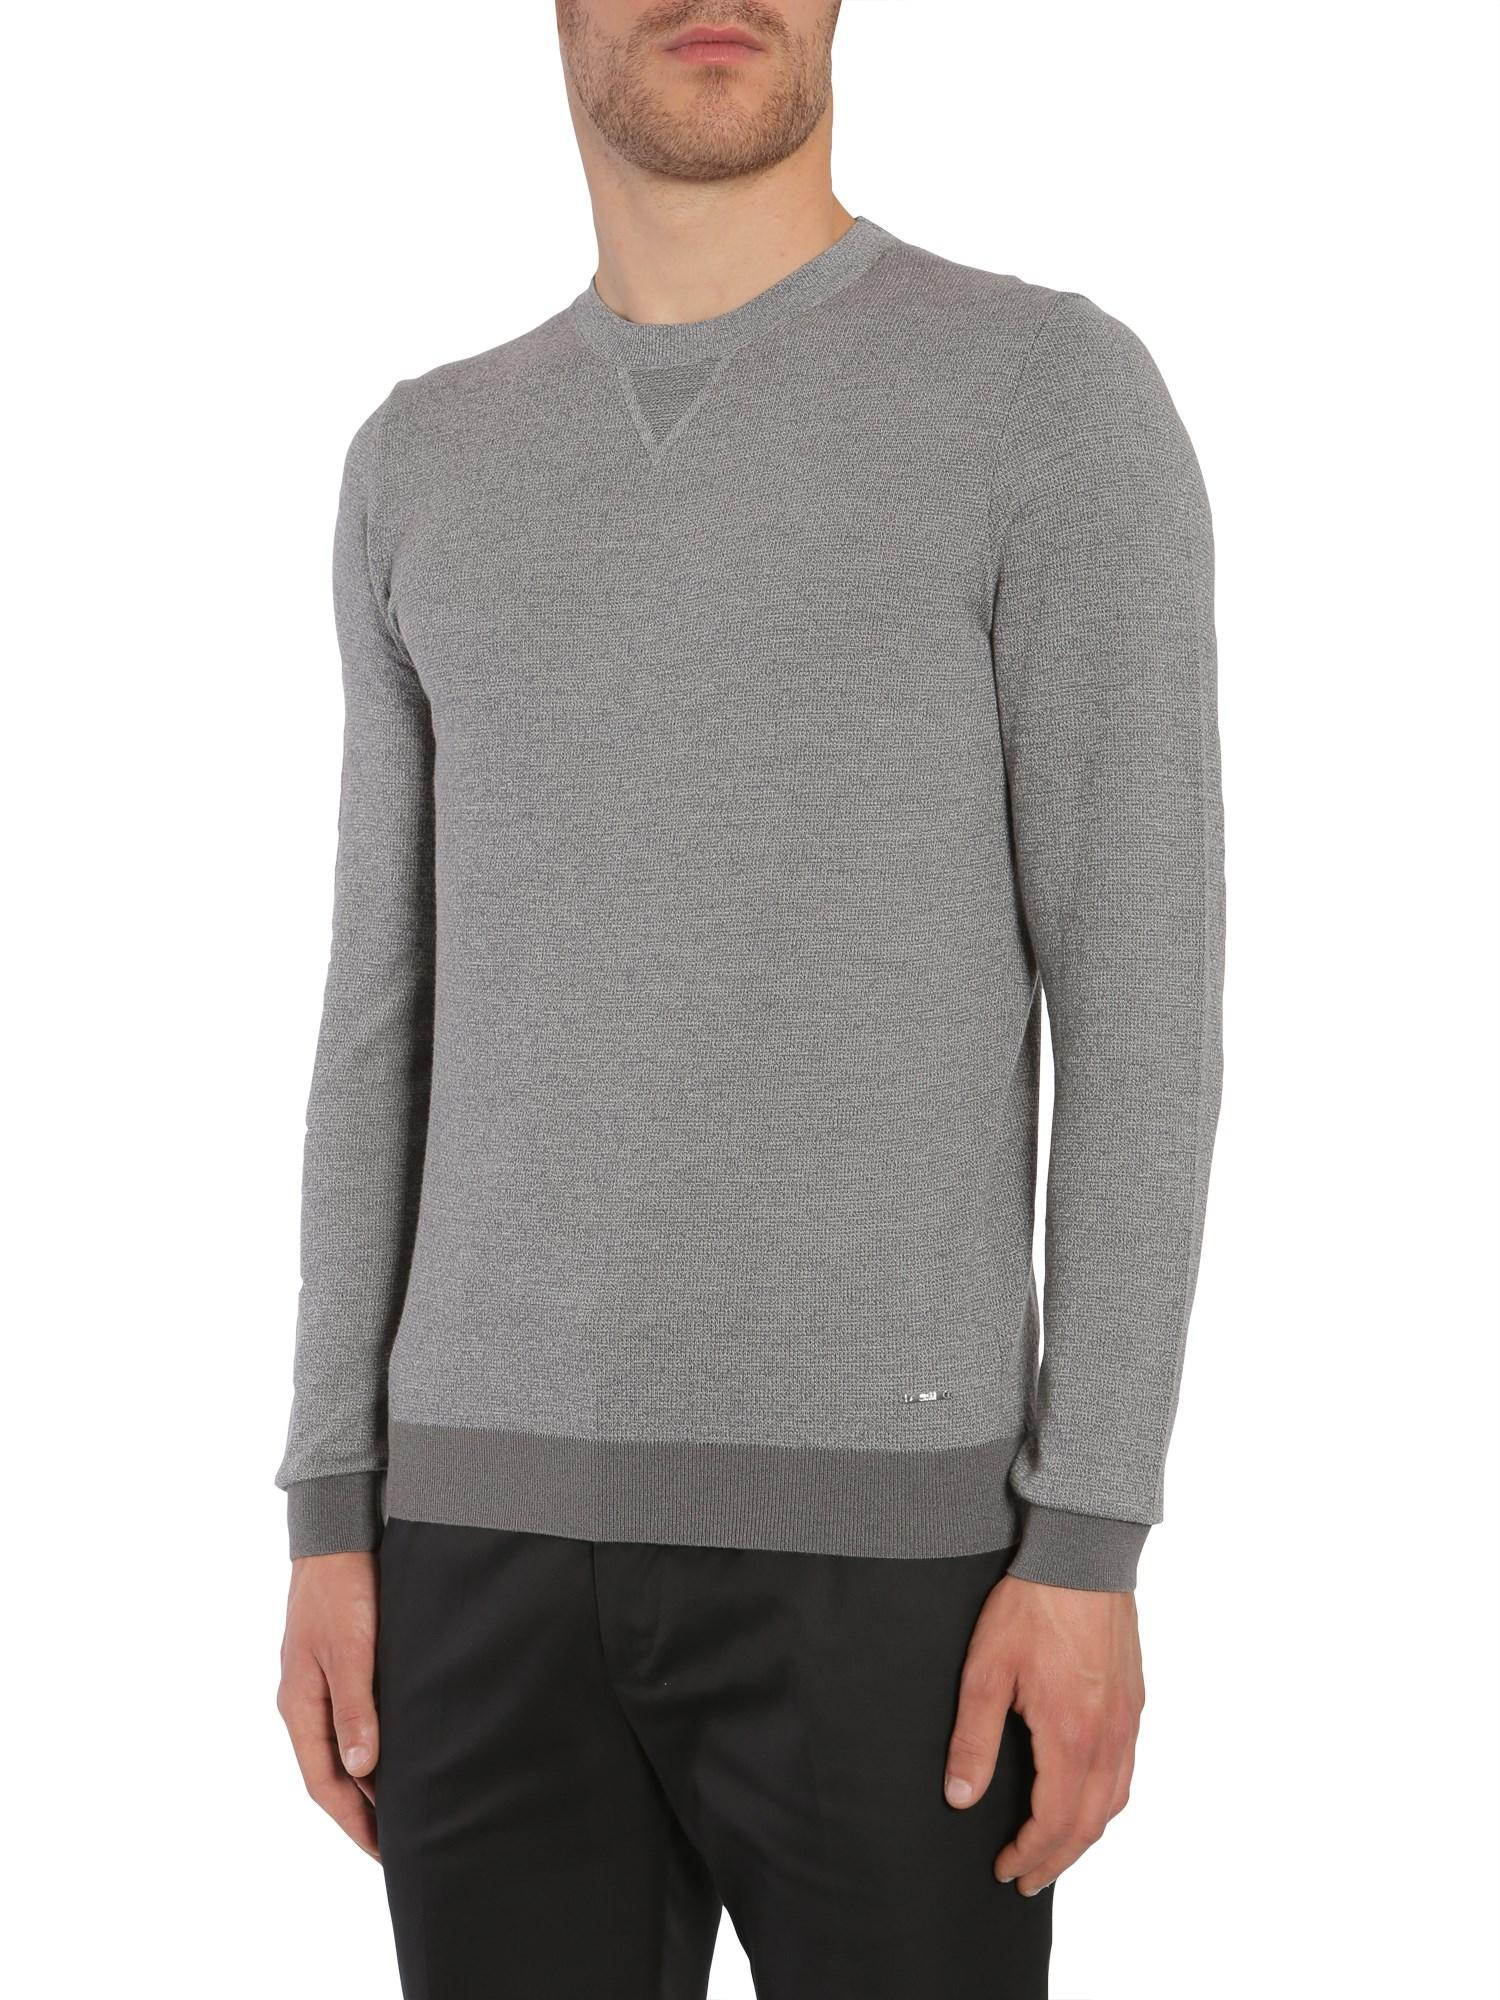 2752630f7 BOSS Grey Wool Sweater in Gray for Men - Save 51% - Lyst